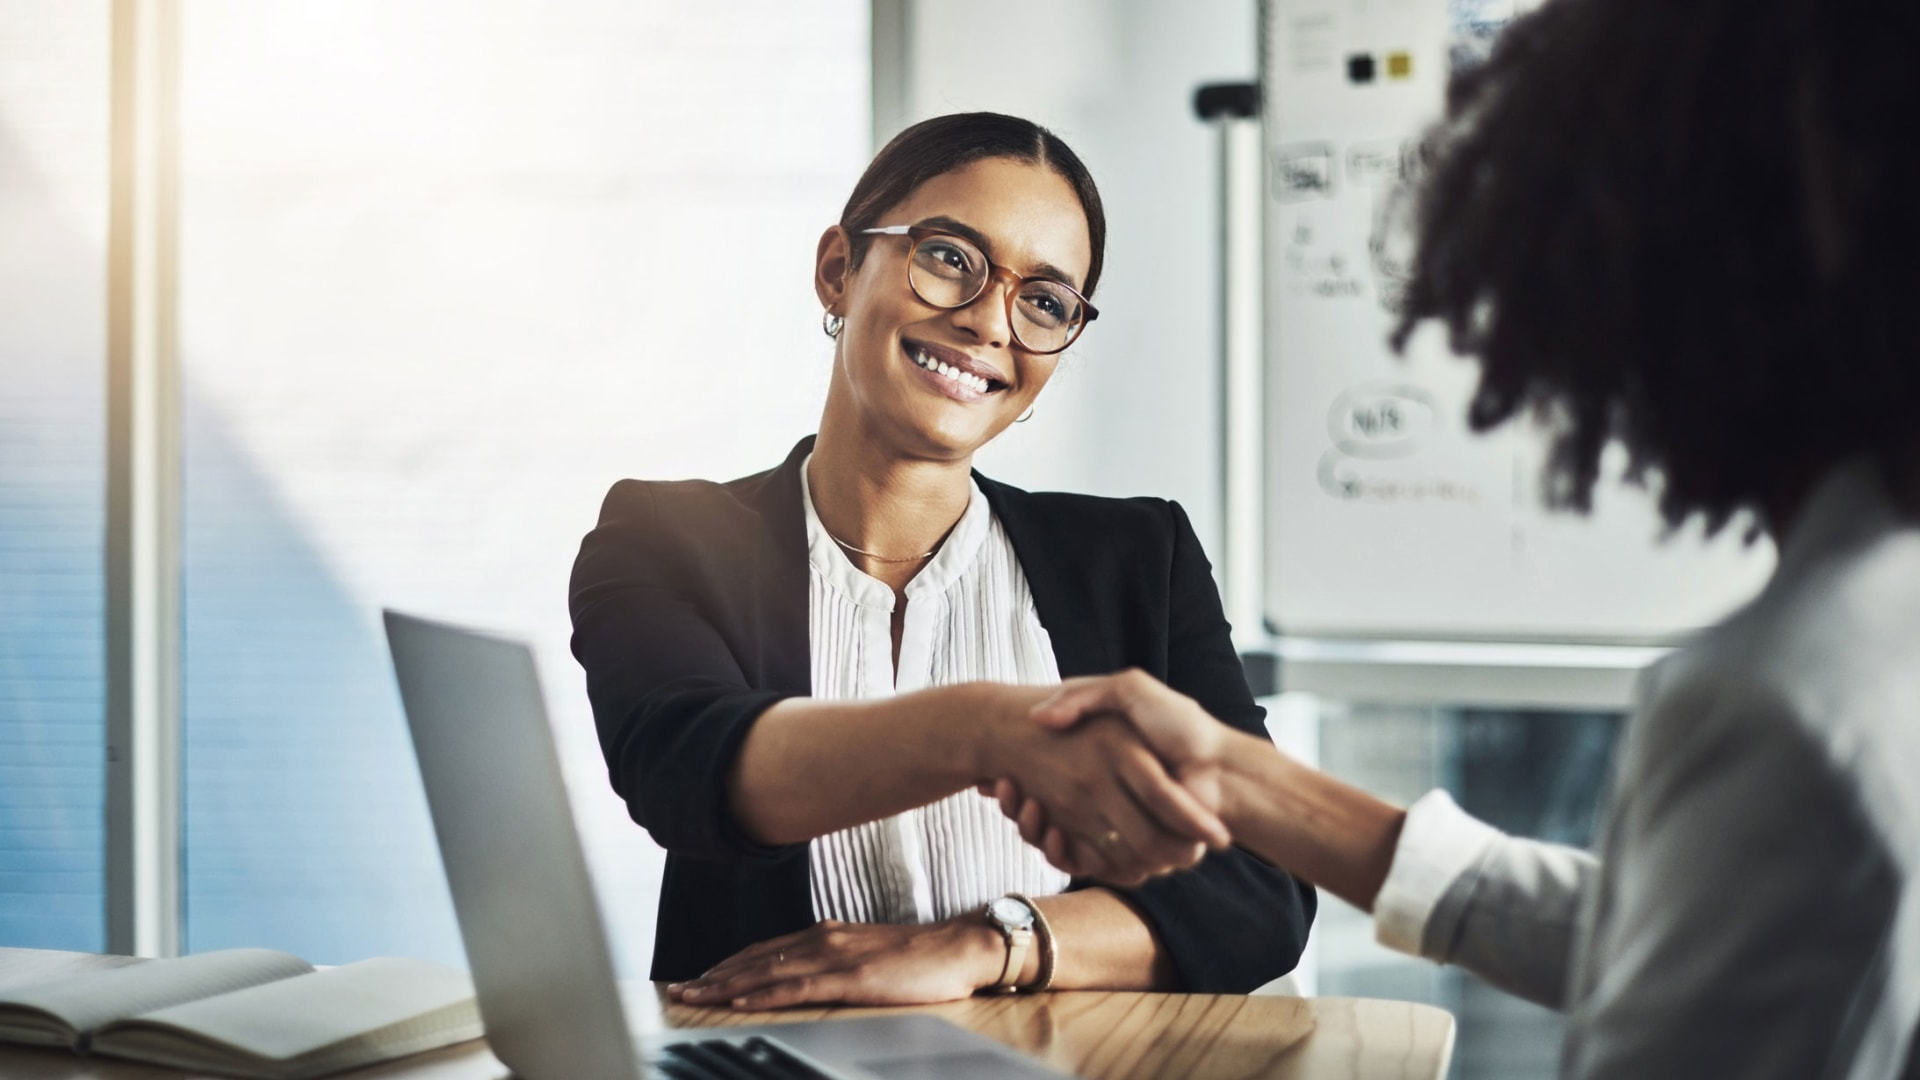 Use This 3-Step Process to Hire the Best Talent